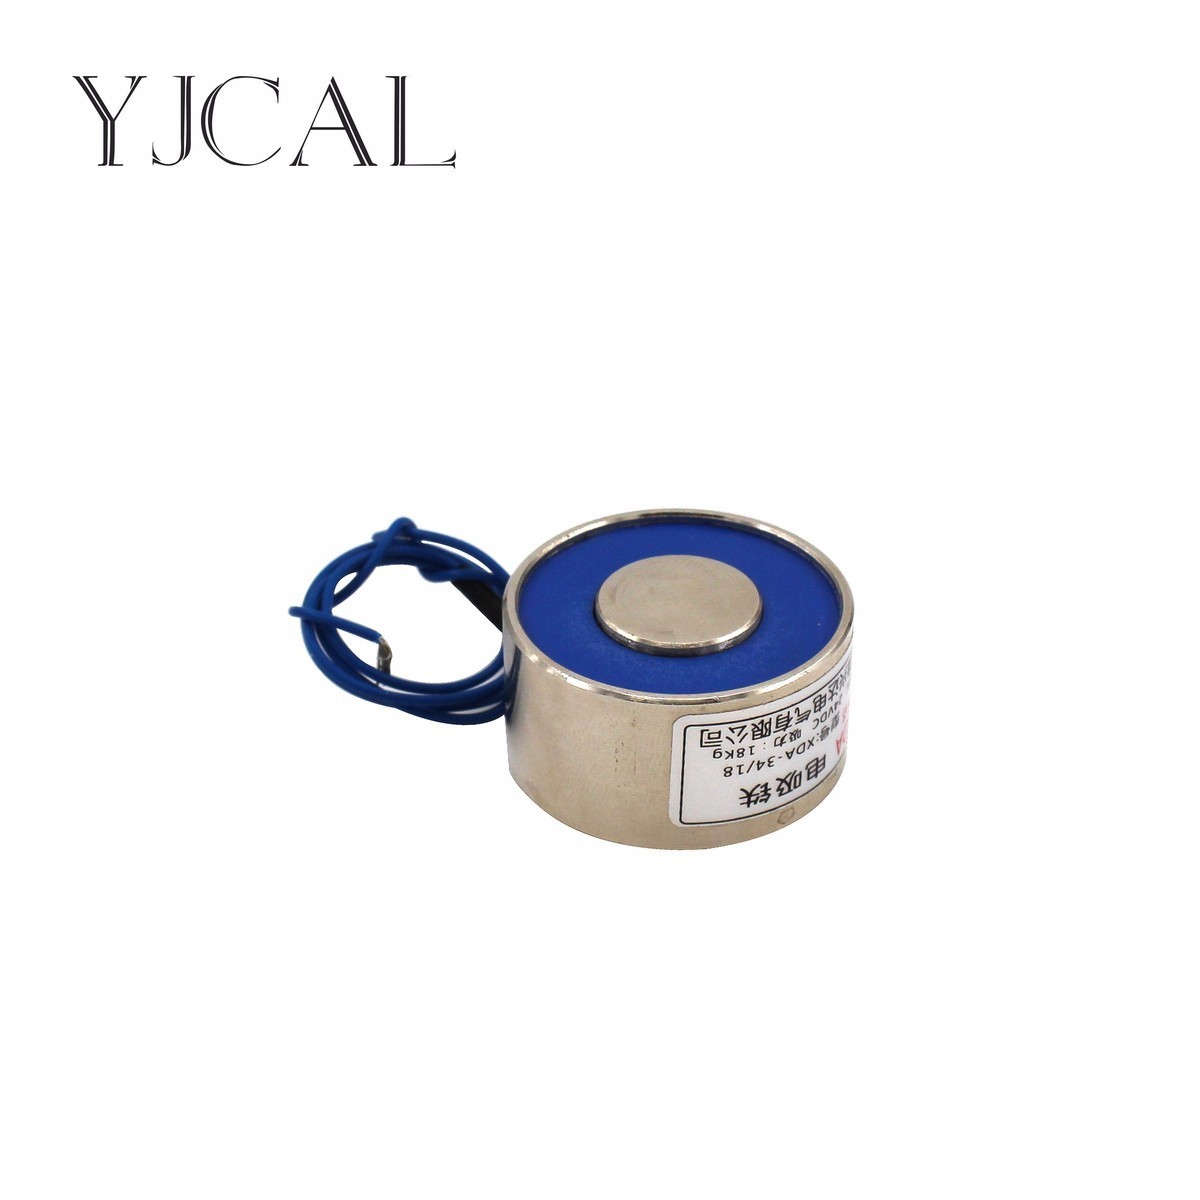 YJ- 50/30 DC 12V 24V Circular Micro Holding Electric Magnet Lifting 60KG Solenoid Sucker Electromagnet 50 30 dc 6v 12v 24v waterproof energized hold electromagnet 60kg sucker electric magnet coil portable lift powerful 12 solenoid